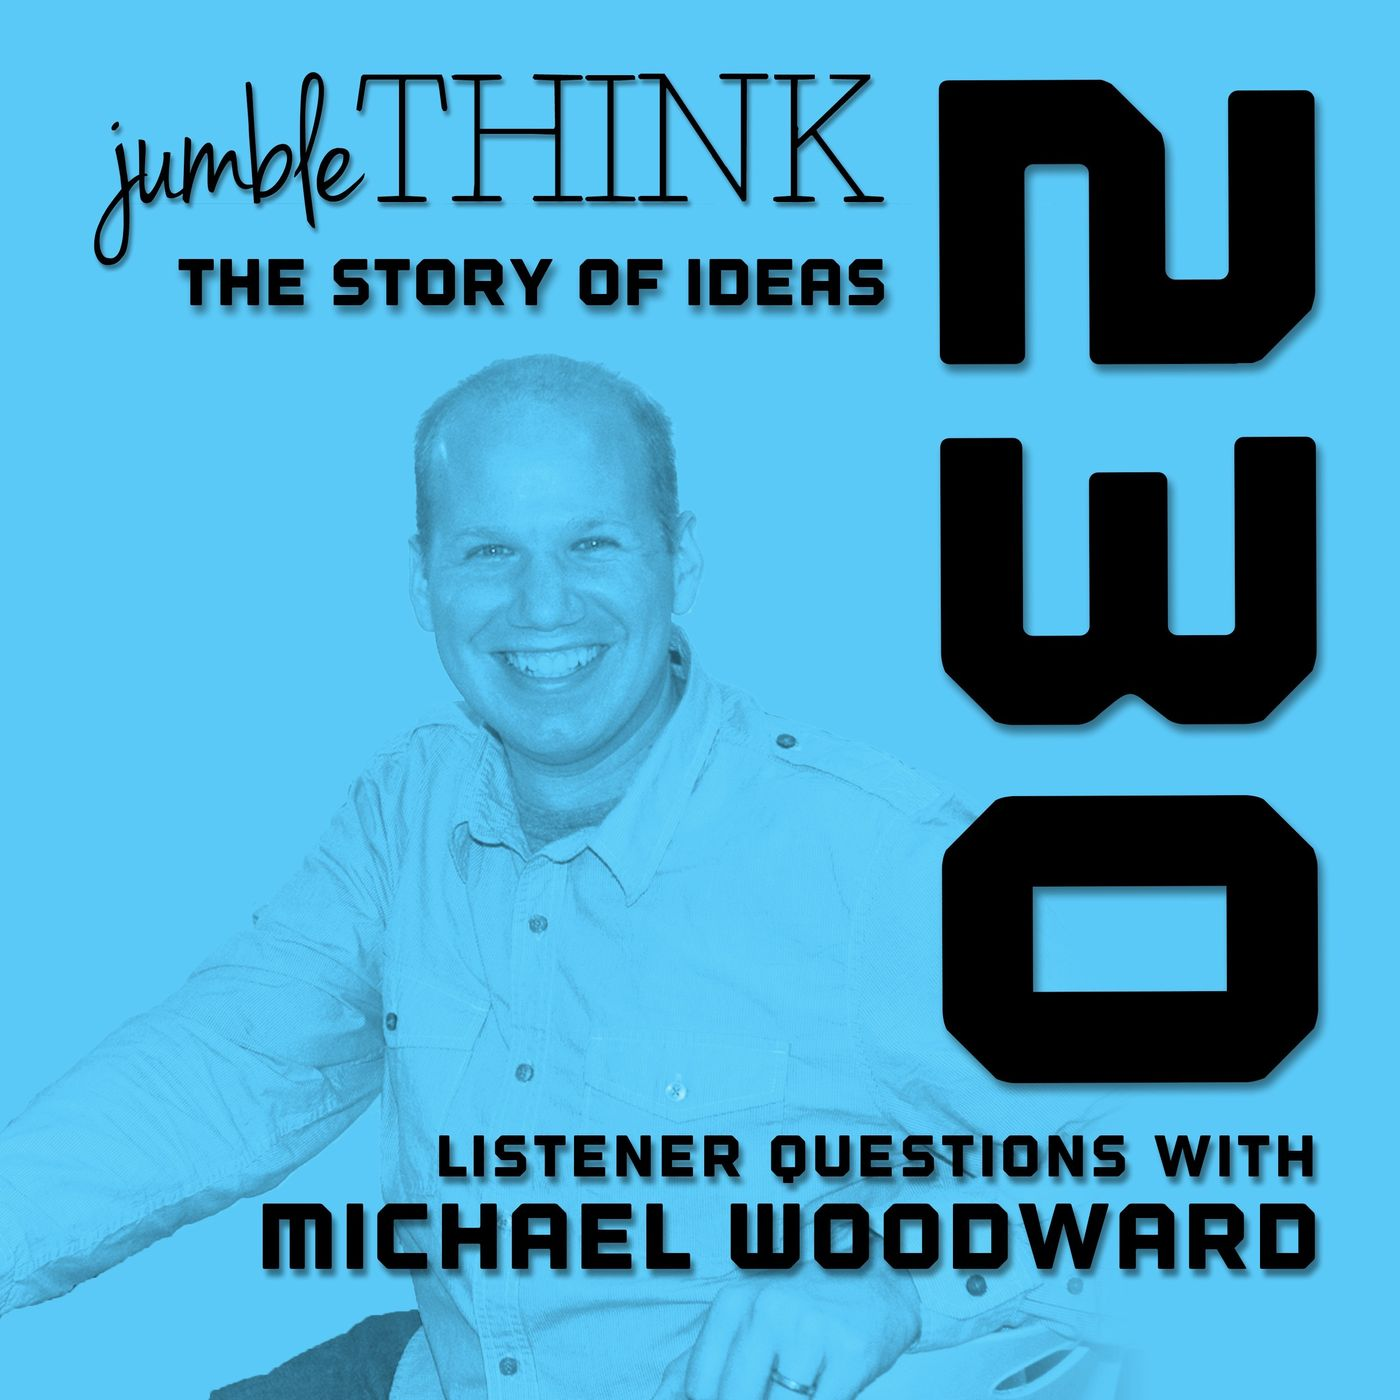 Listener Questions with Michael Woodward